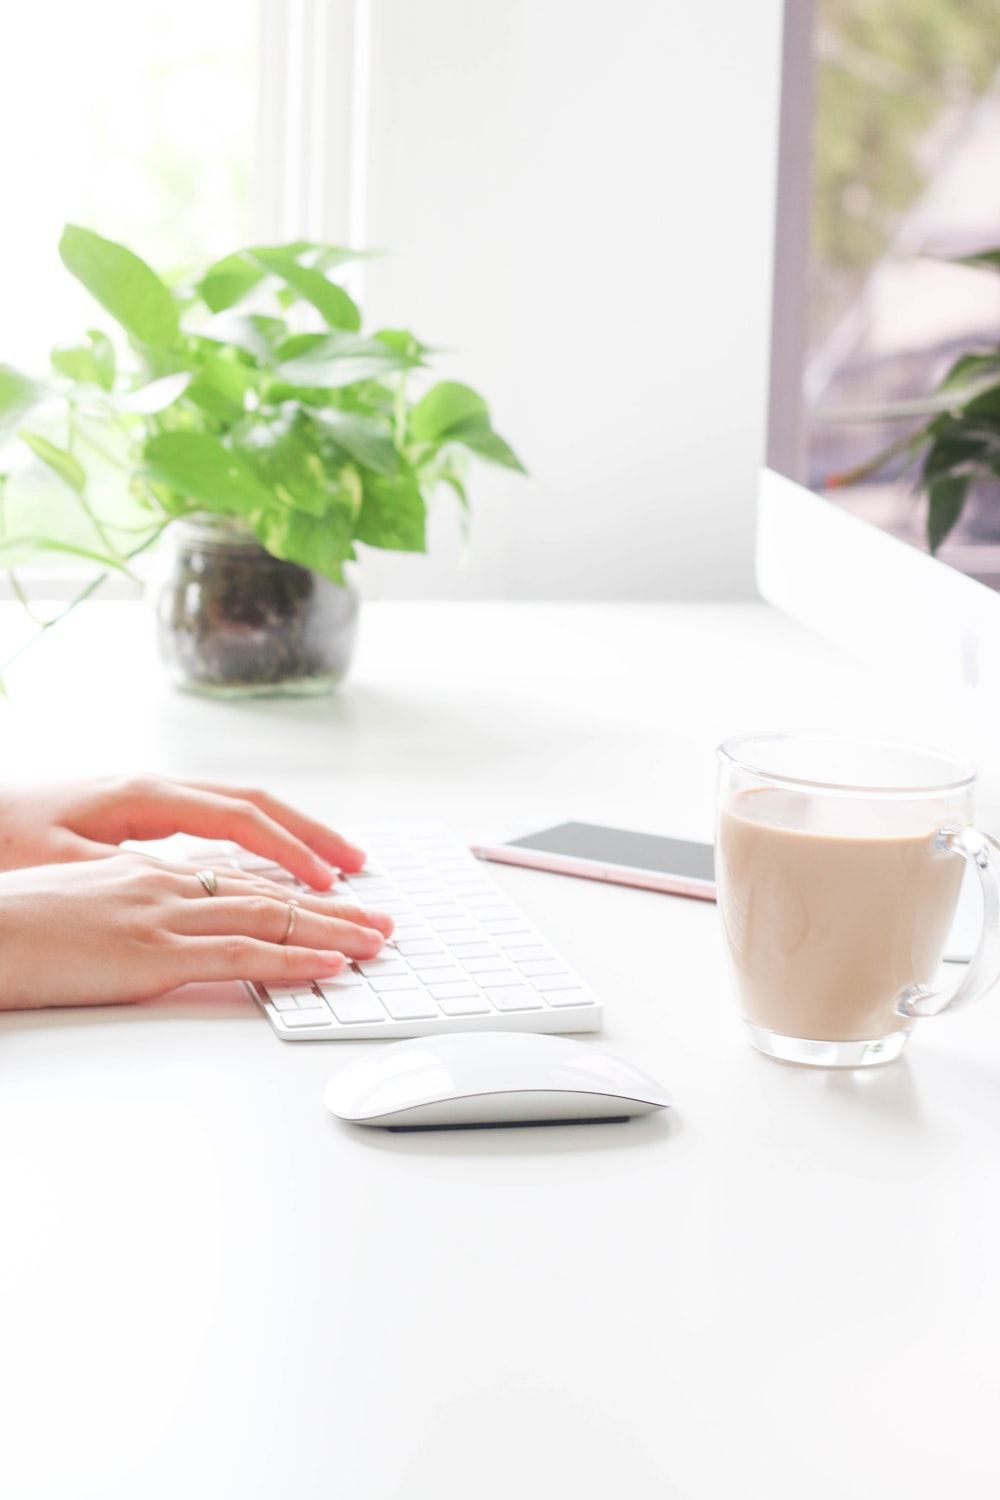 person using Apple Wireless Keyboard near Apple Magic Mouse, mug, and rose gold iPhone 6s on table